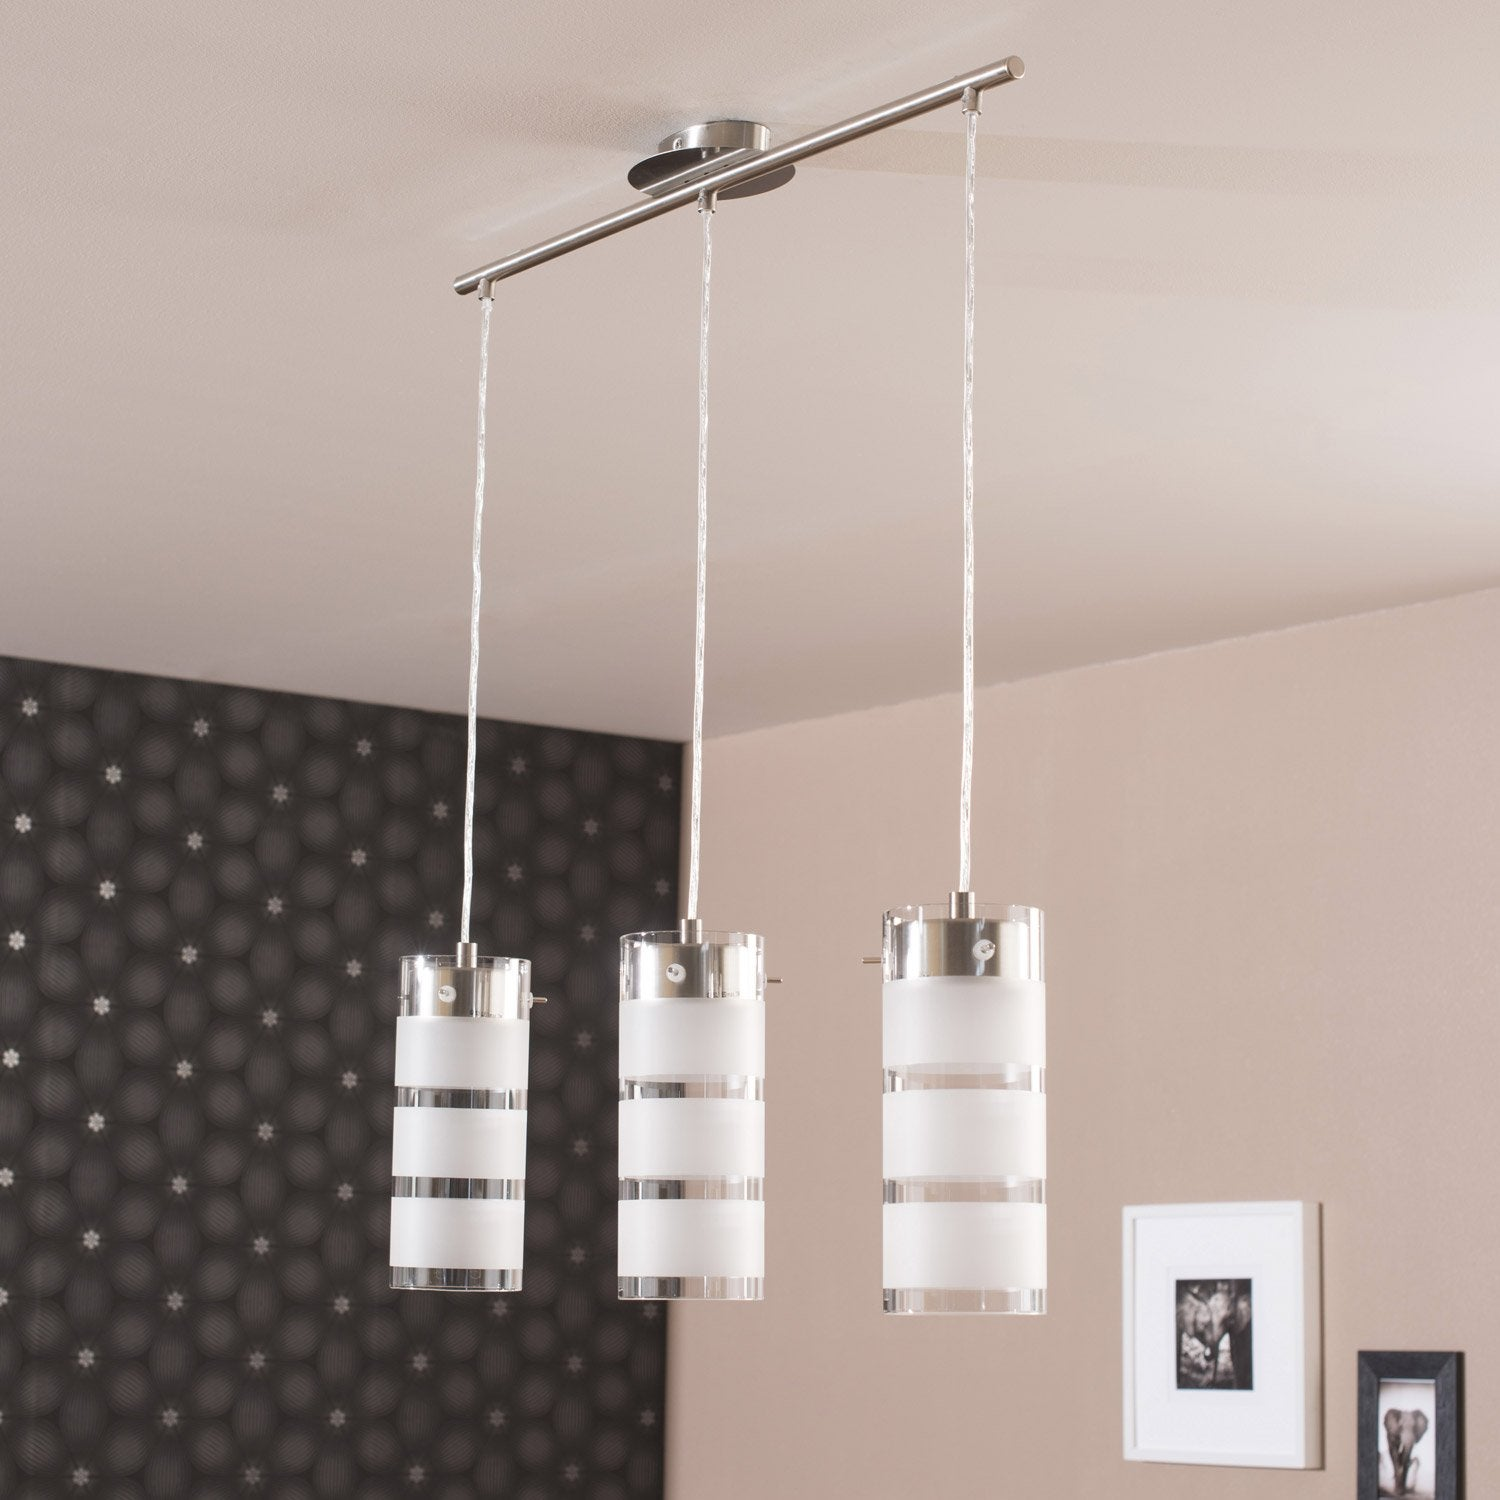 Suspension metal blanc maison design - Leroy merlin braga ...